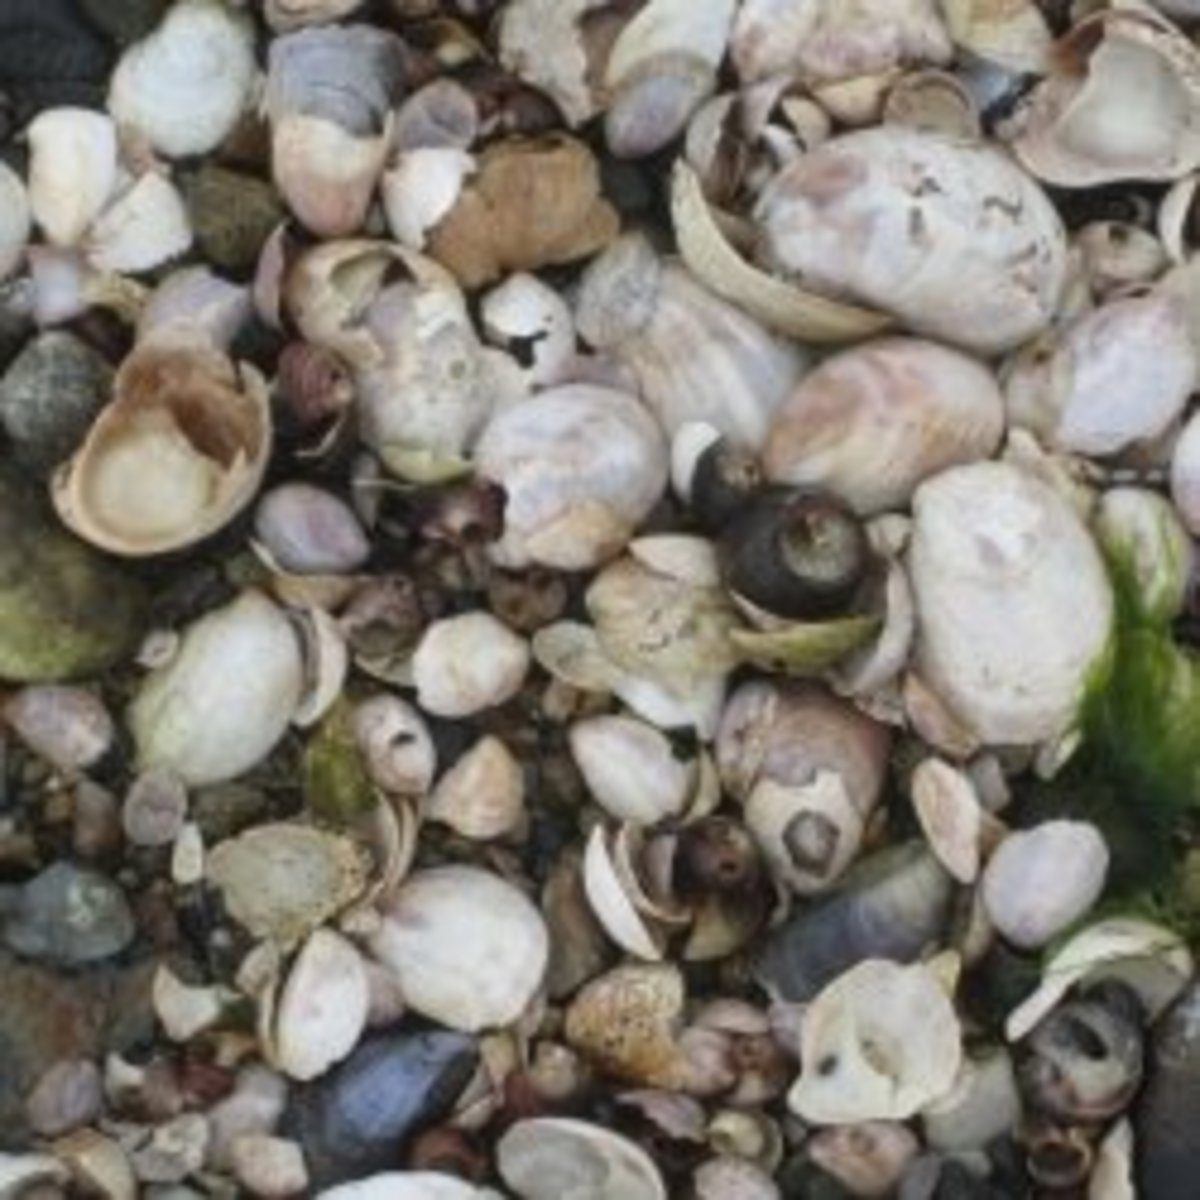 Identifying Seashells from a Beachcombing Collection